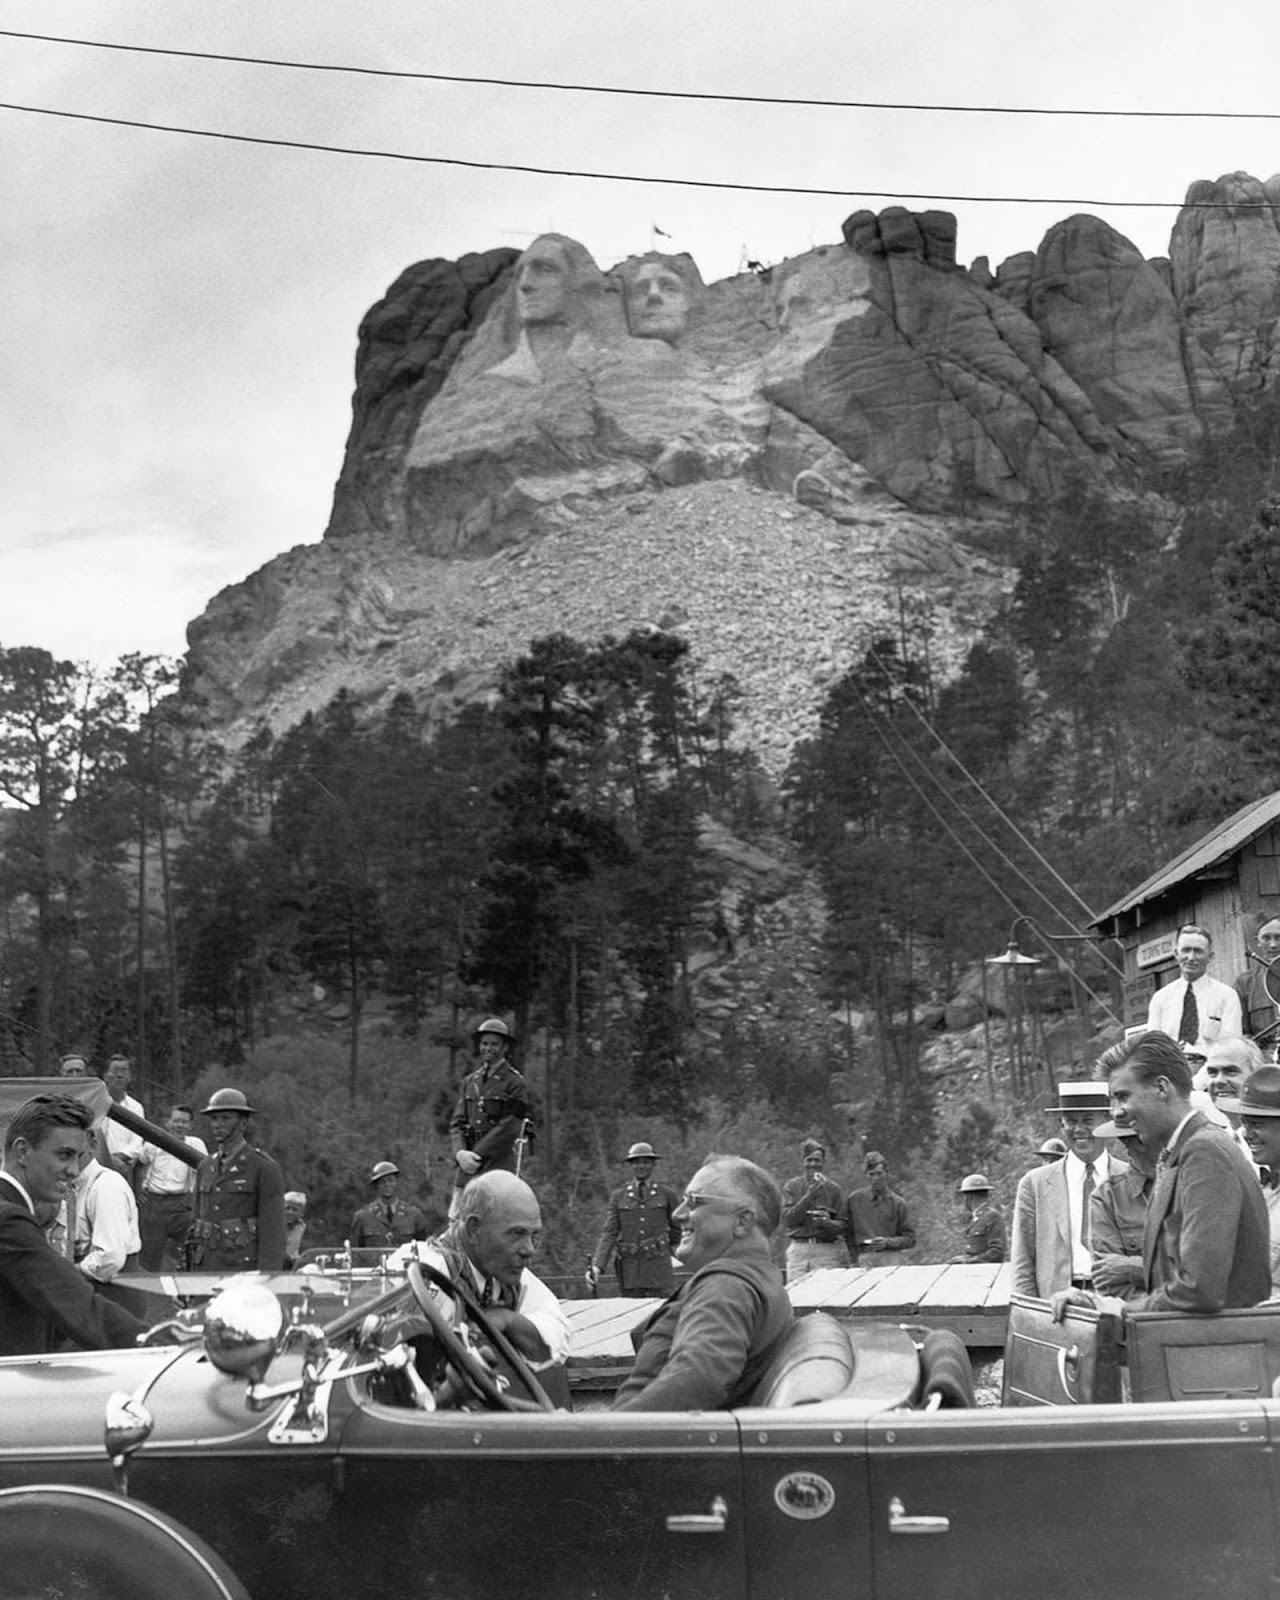 President Franklin Roosevelt visits Mount Rushmore to dedicate the sculpture of Thomas Jefferson. 1936.